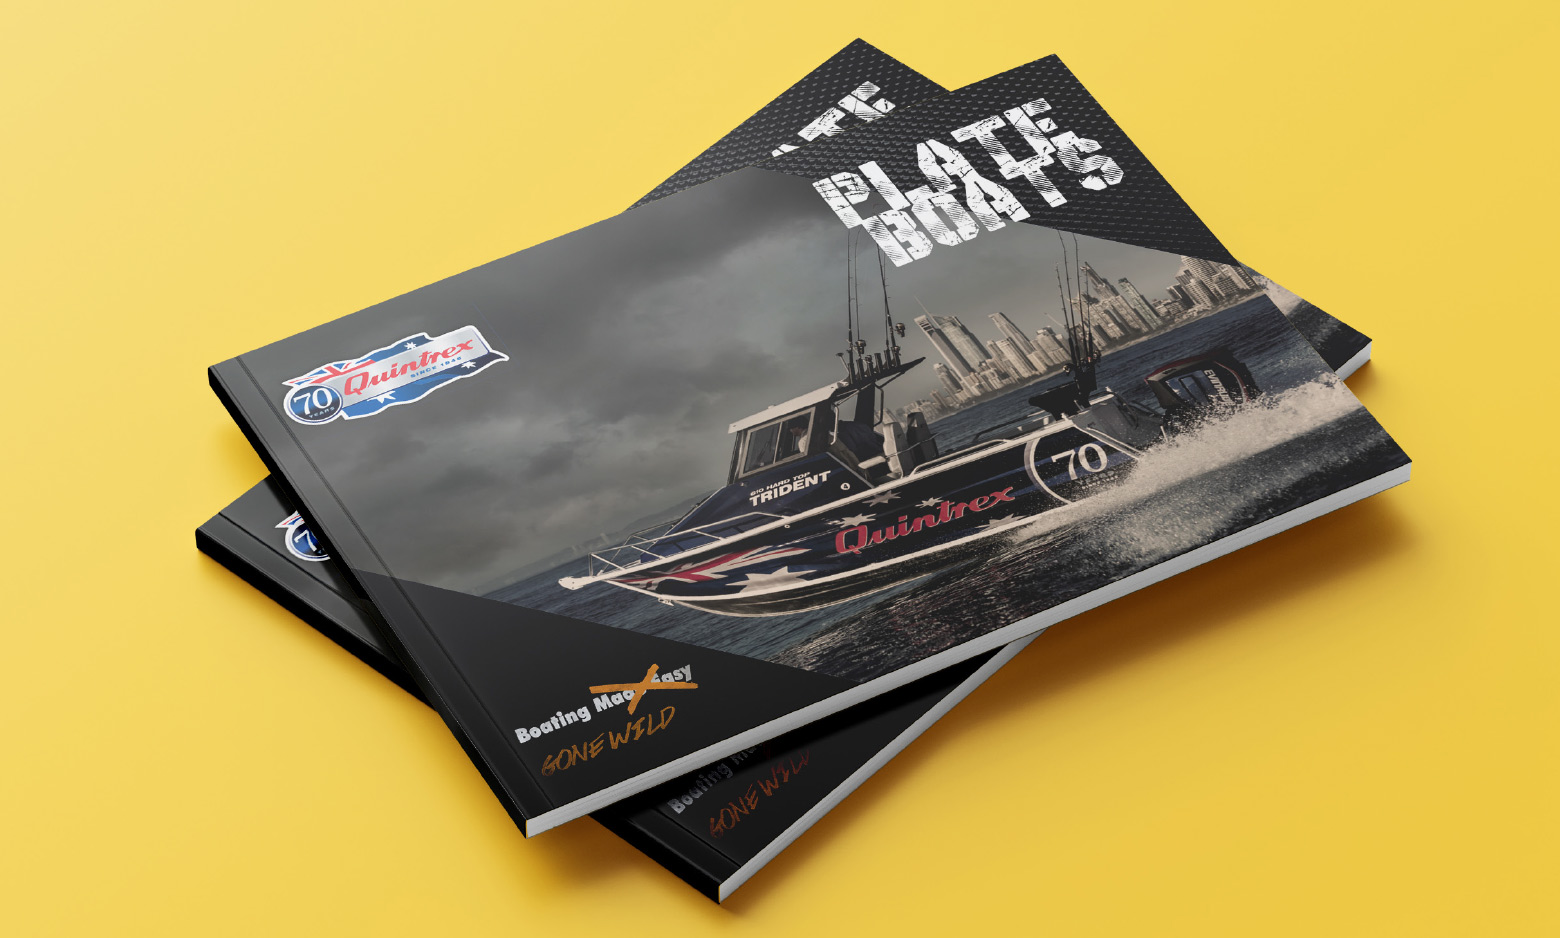 quintrex-2015-plate-boats-book